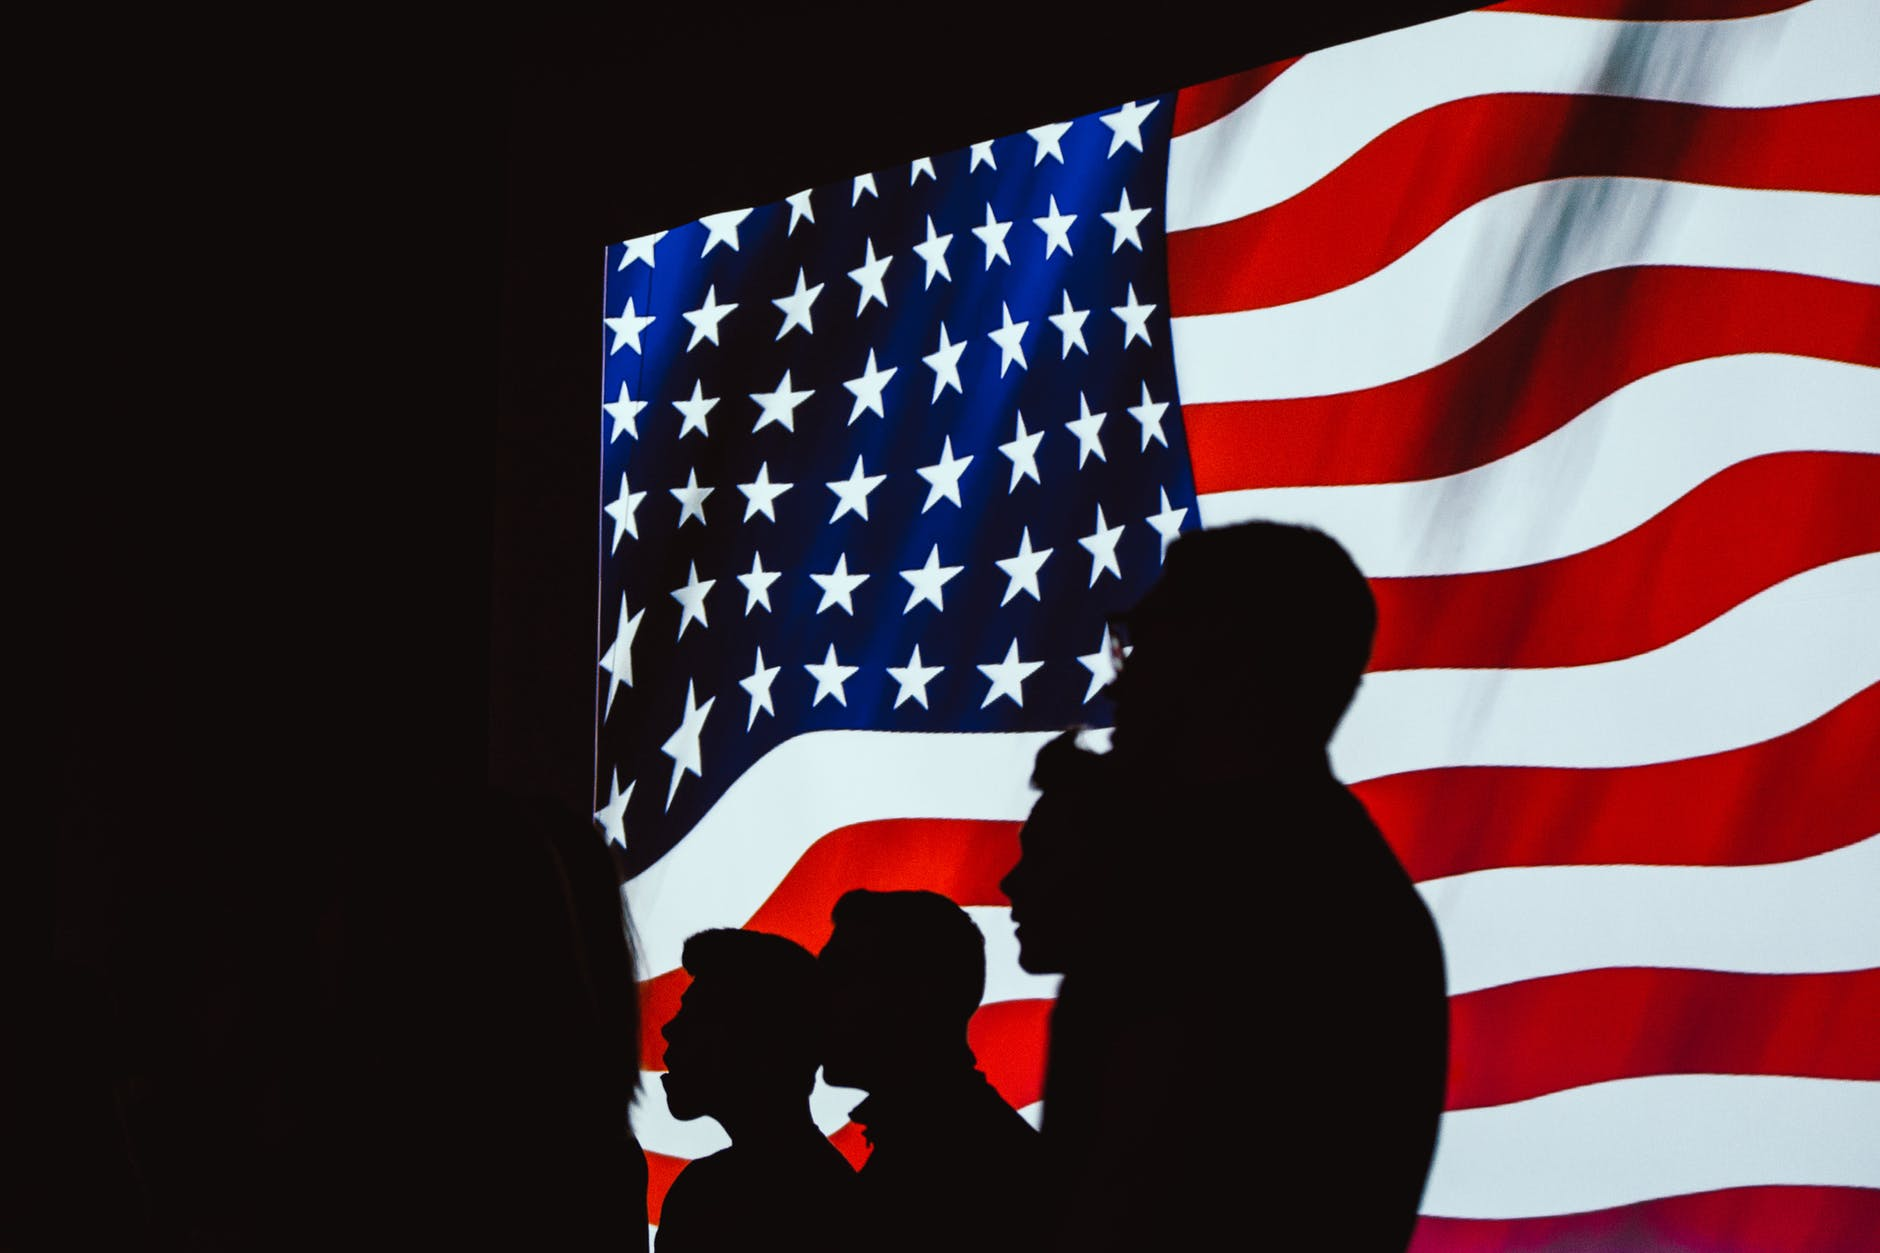 The United States Flag with Veterans, who are supported by the VA, saluting in front of it.